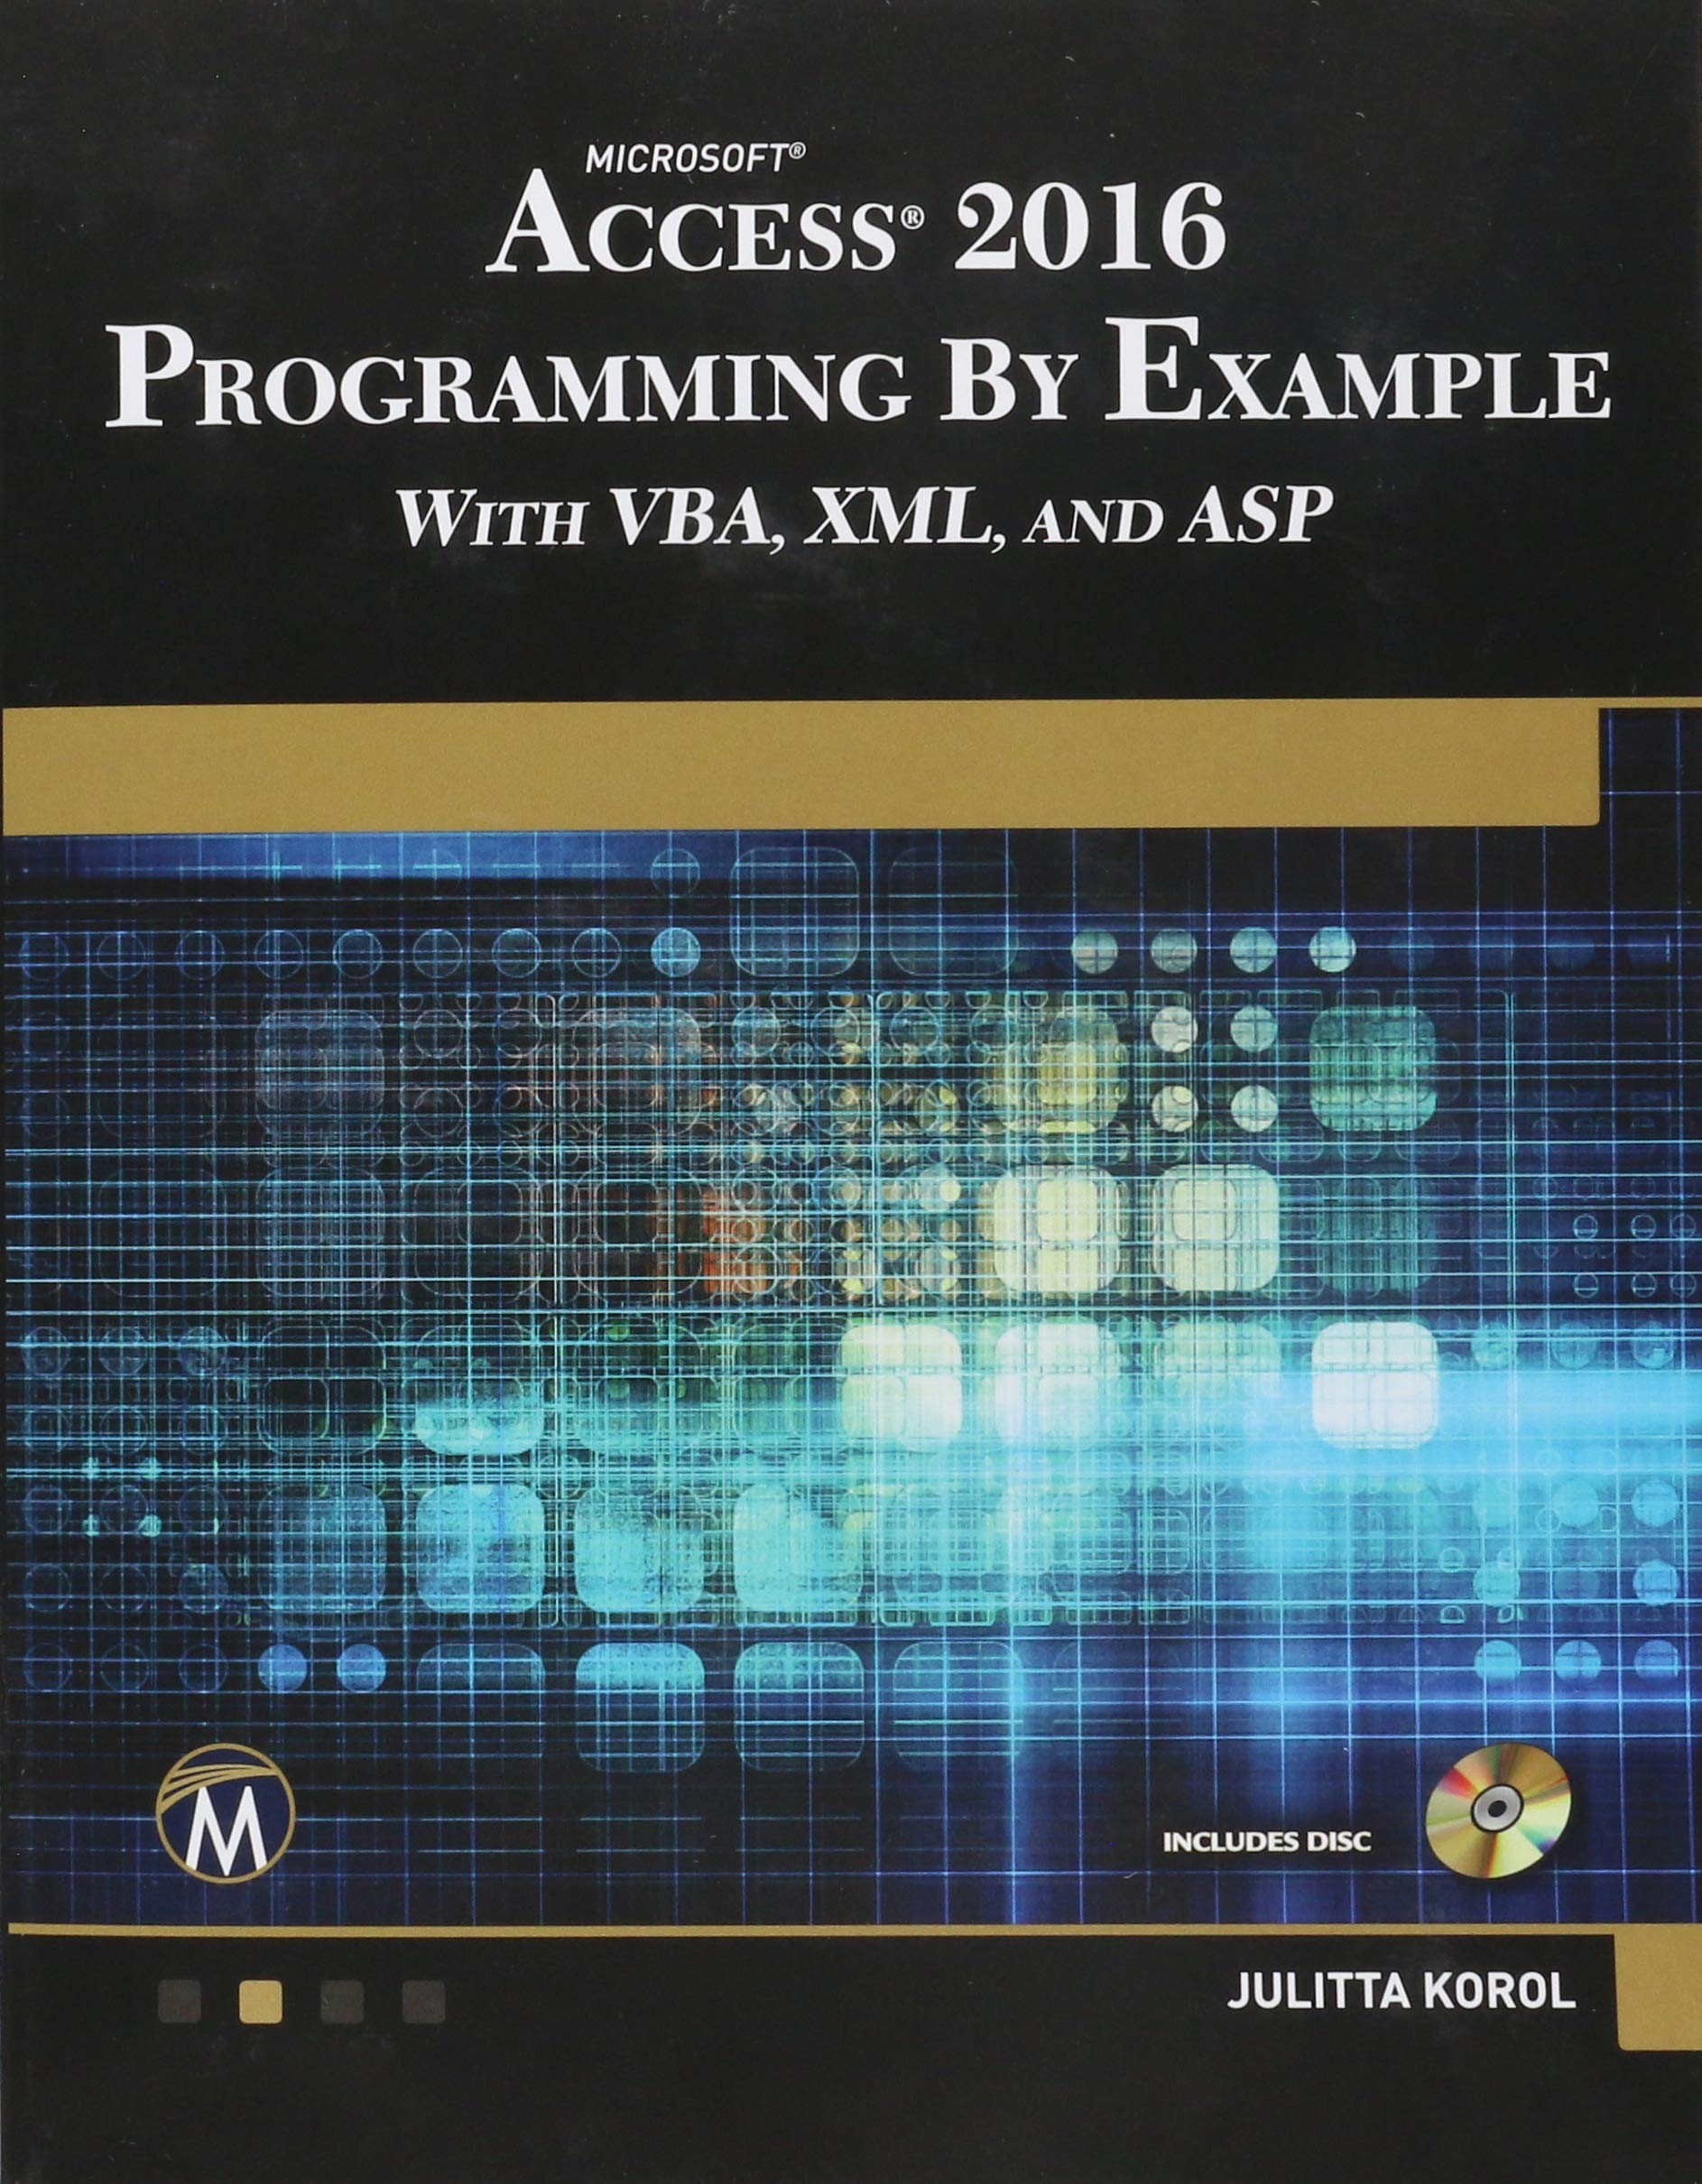 Microsoft Access 2016 Programming By Example: with VBA, XML